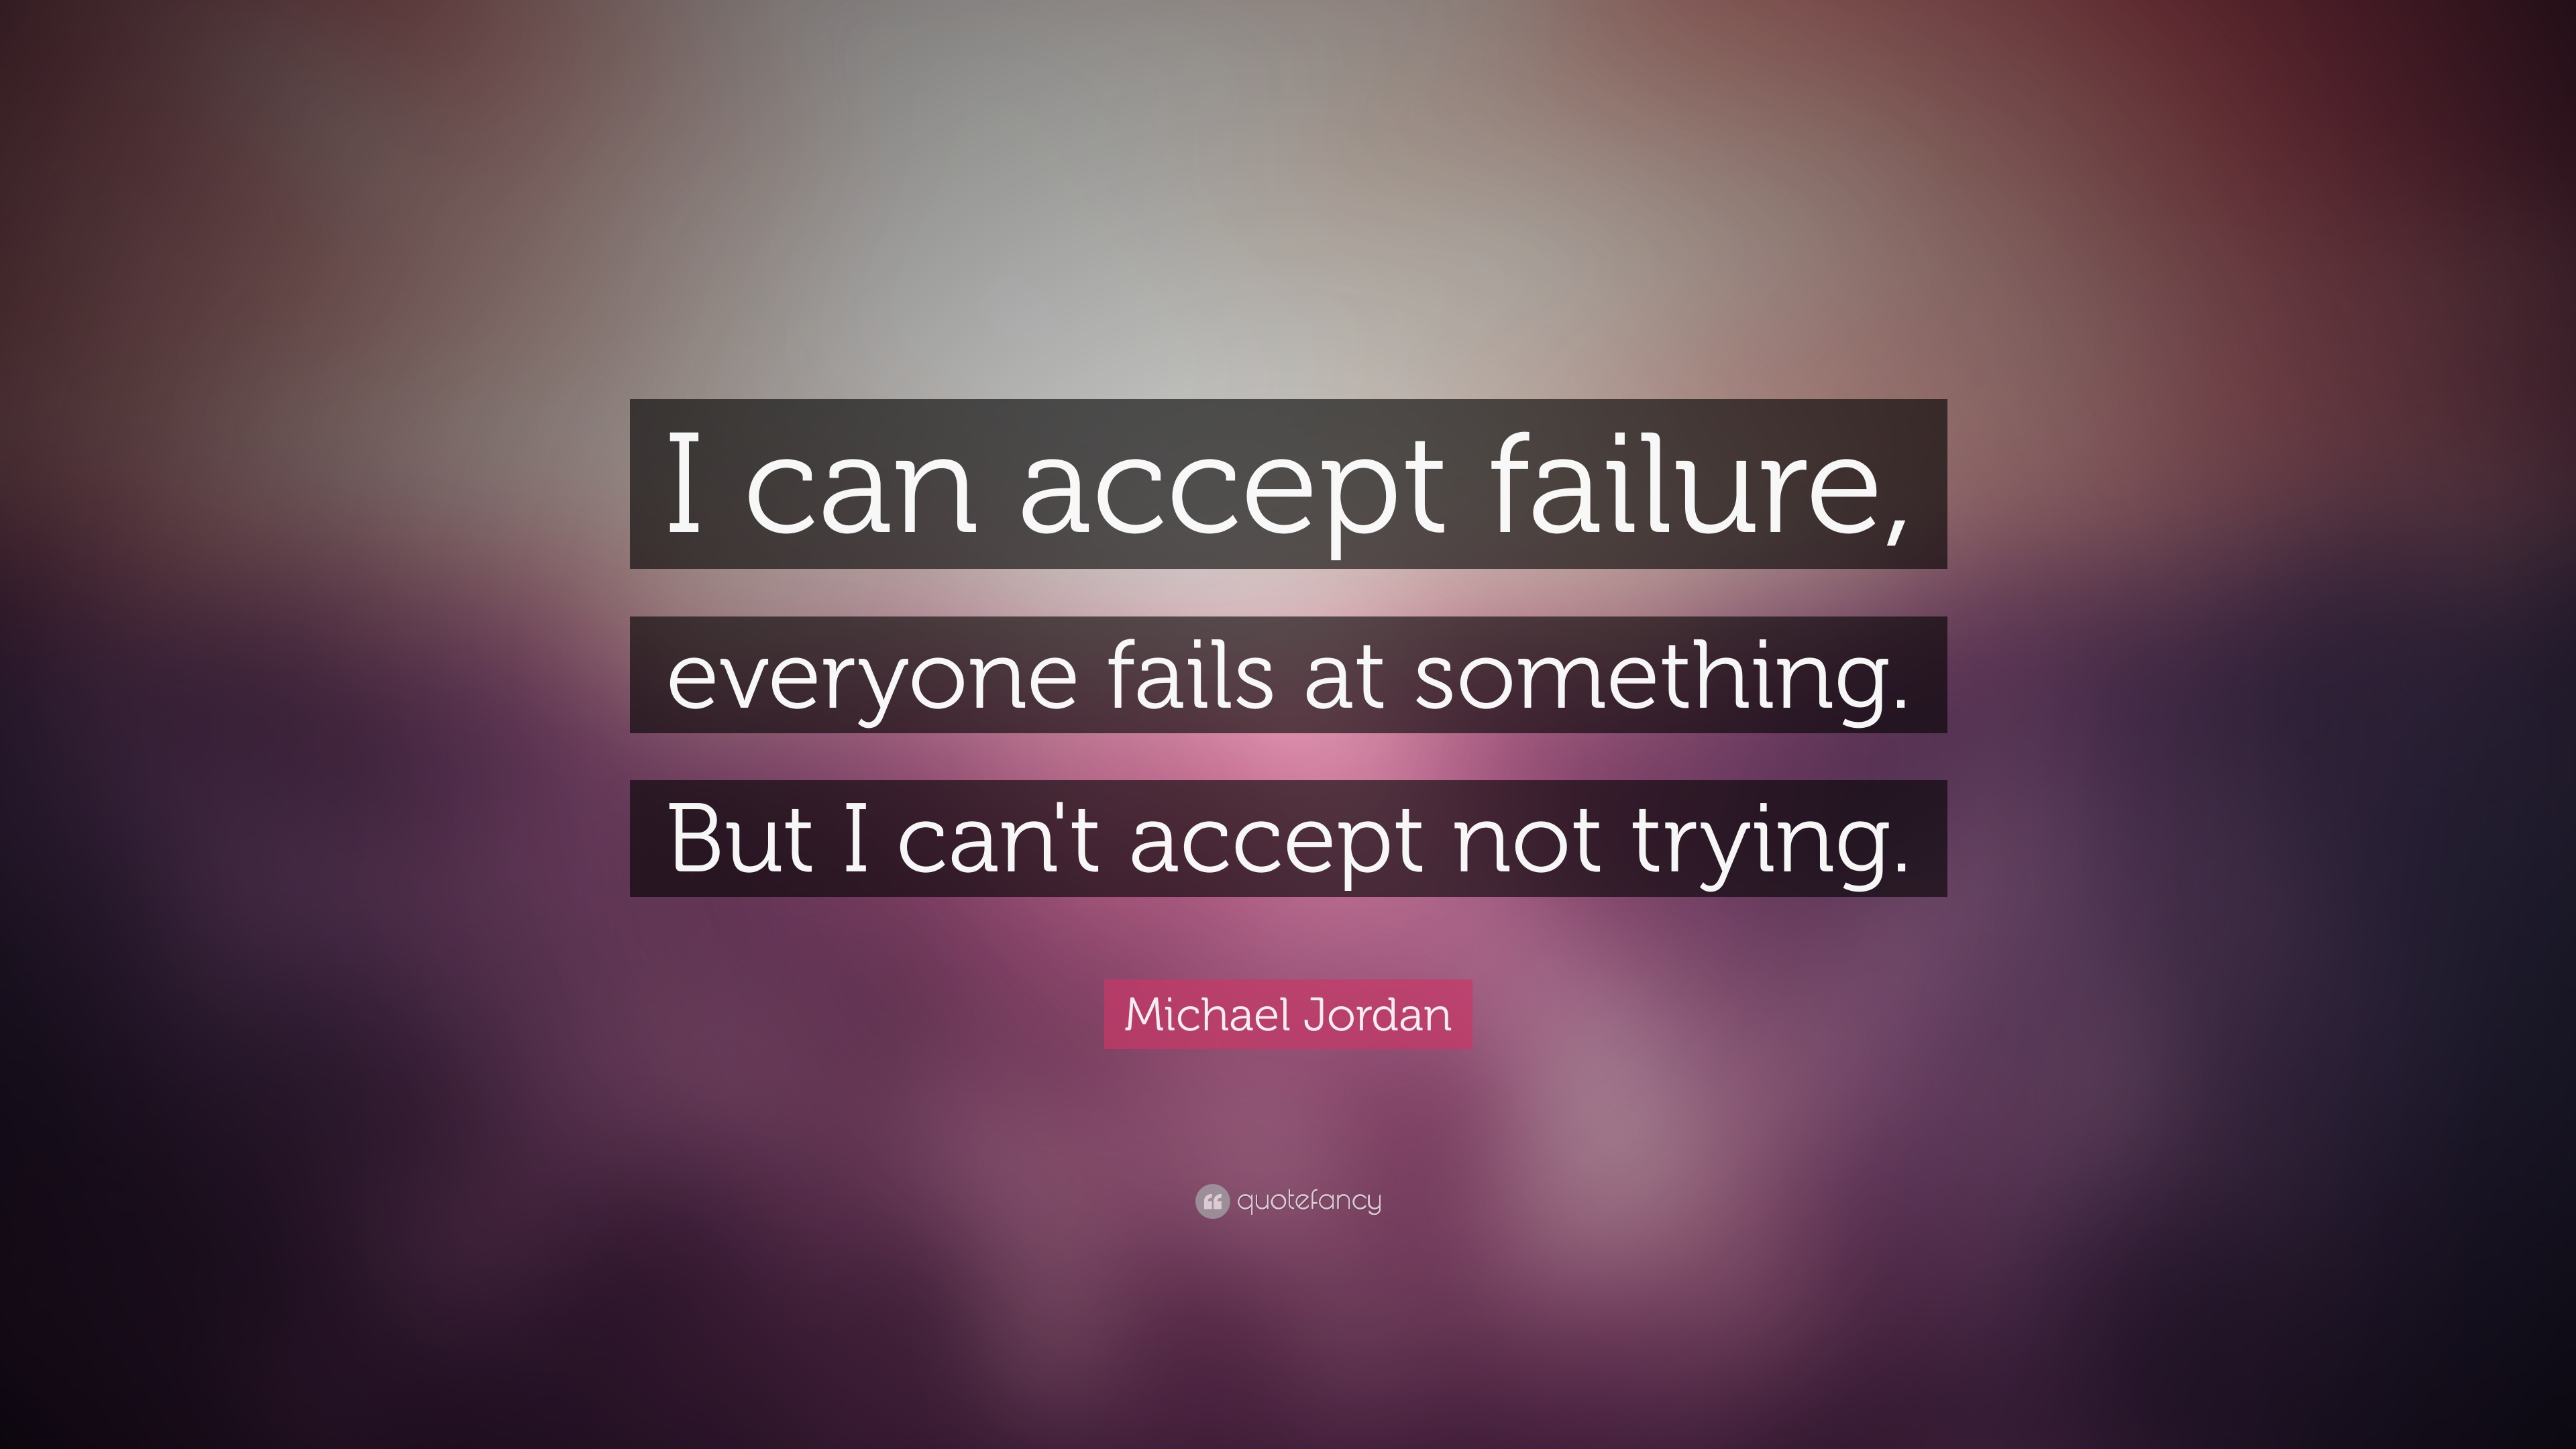 Business Quotes Wallpapers For Desktop Motivational Success Michael Jordan Quote I Can Accept Failure Everyone